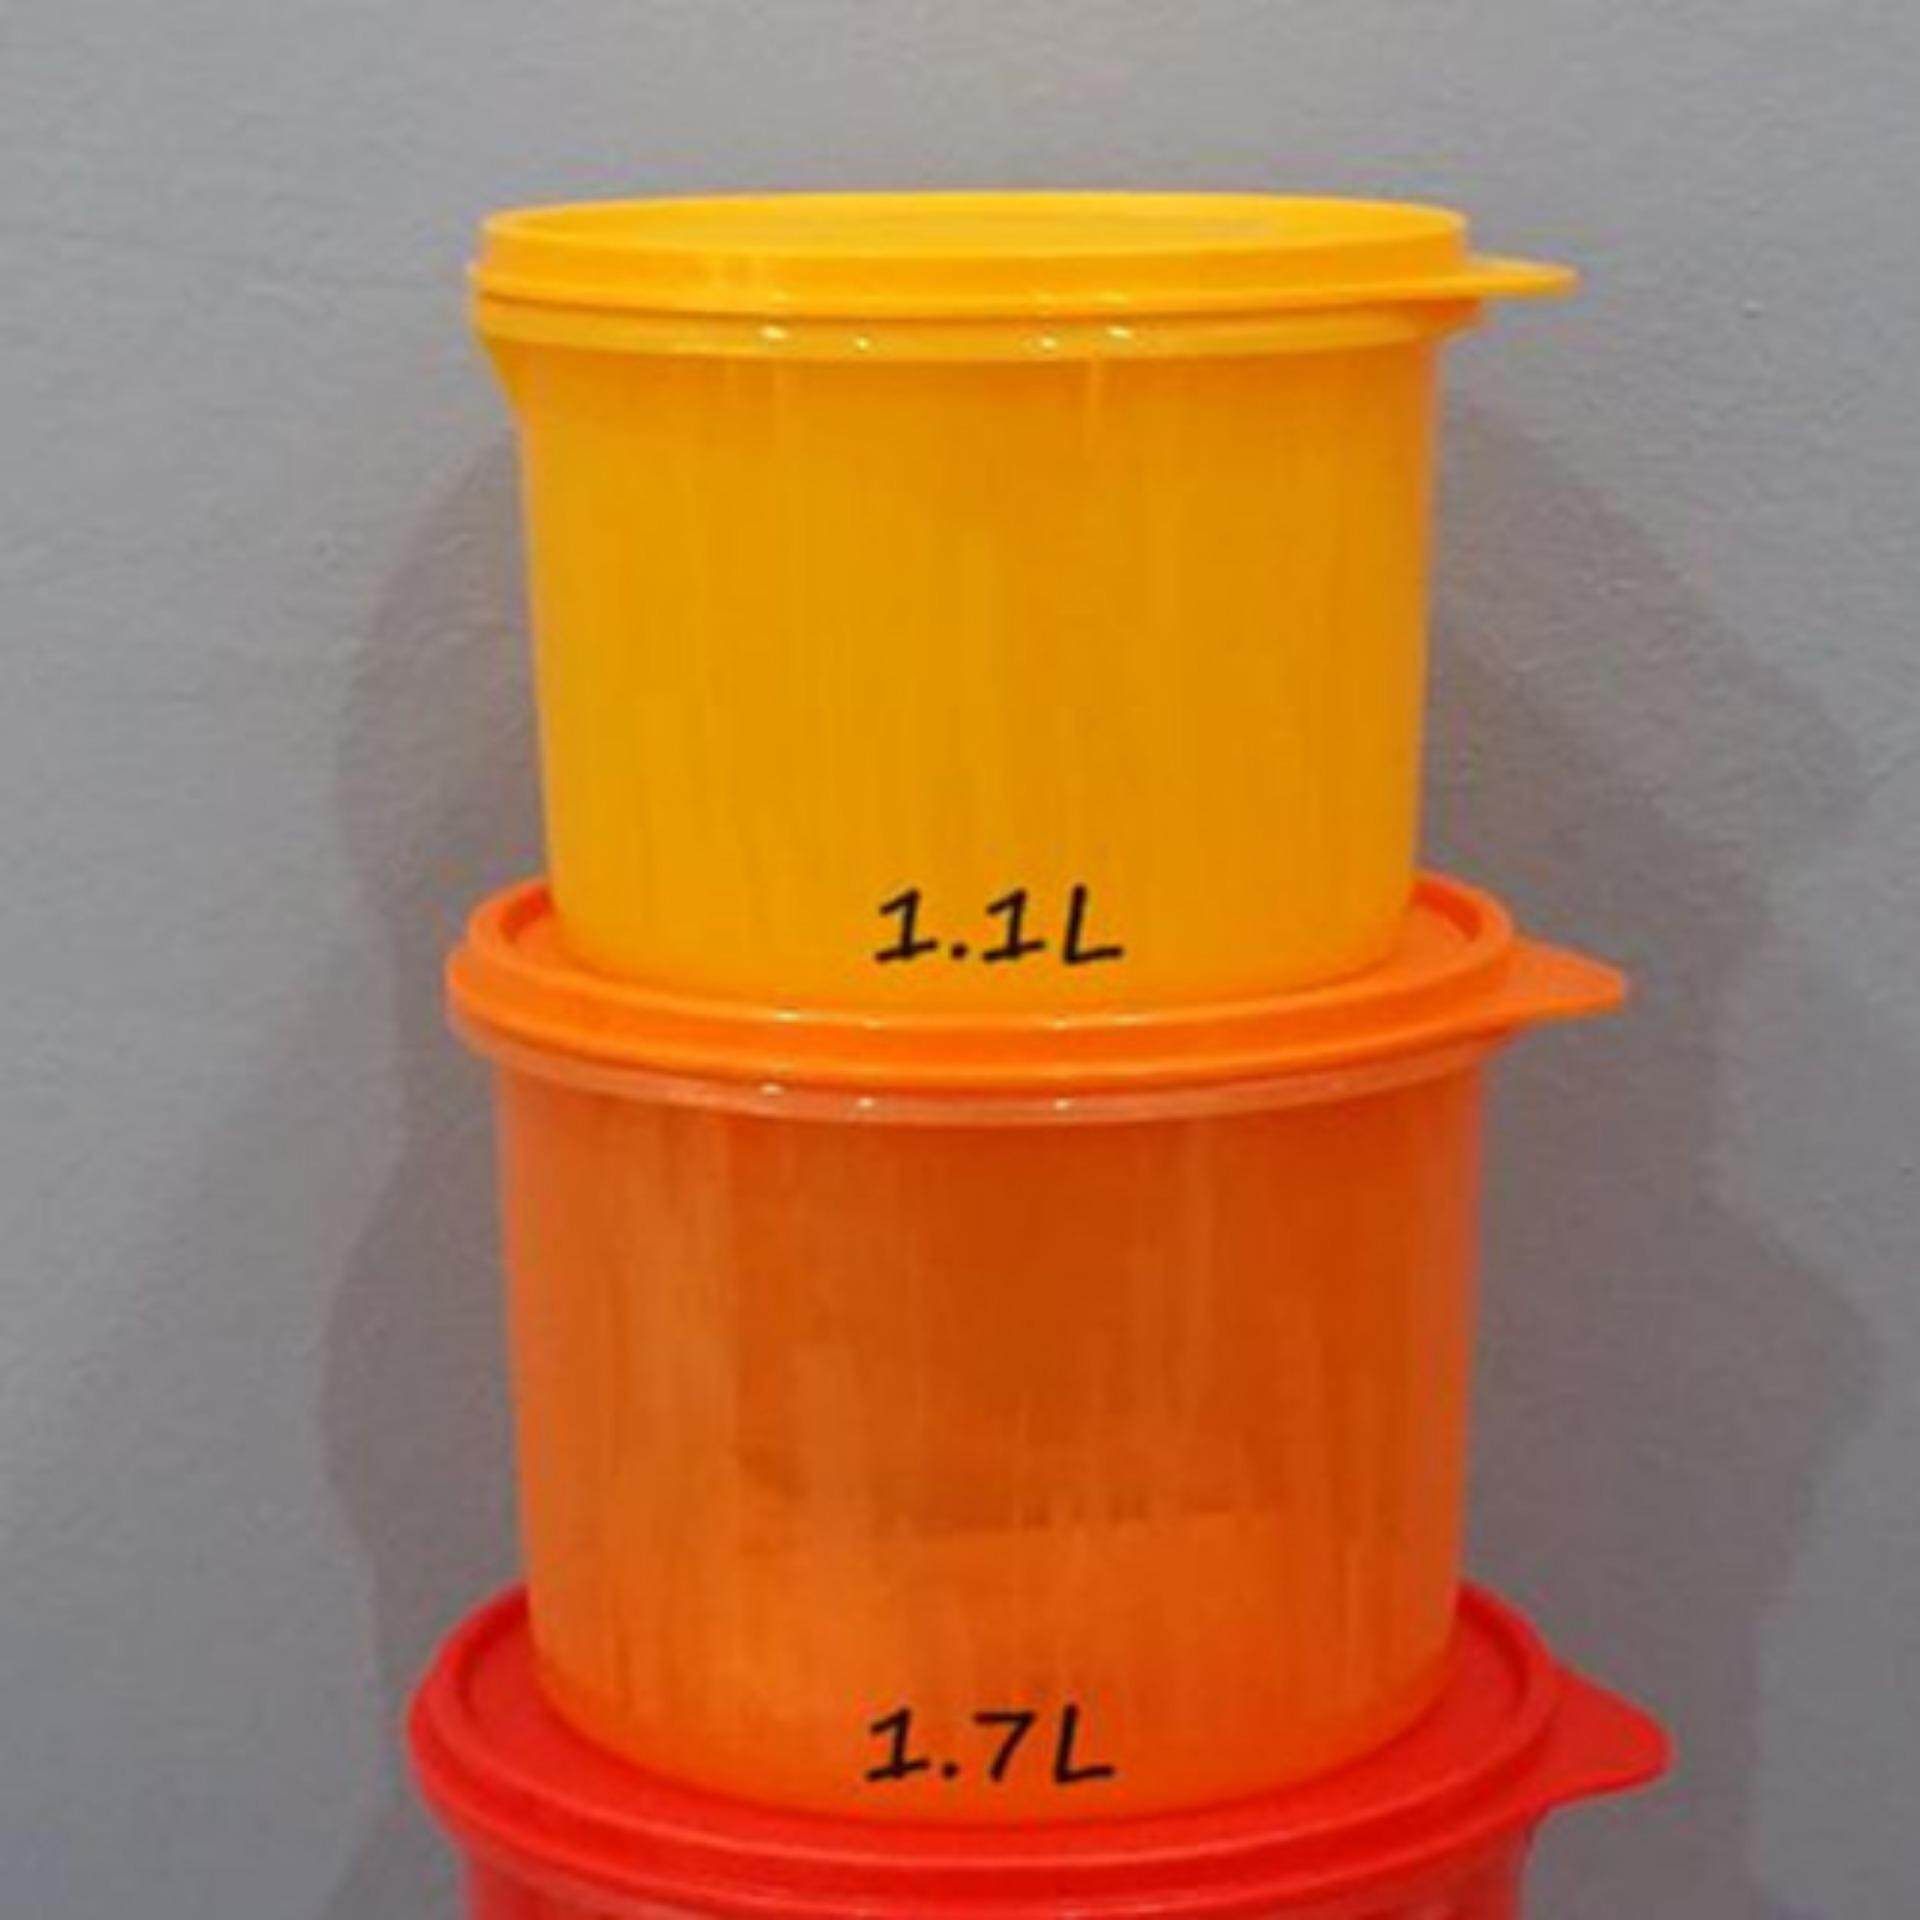 Tupperware Textured Canister 1.1L (1) And 1.7L  (1) Set - Orange